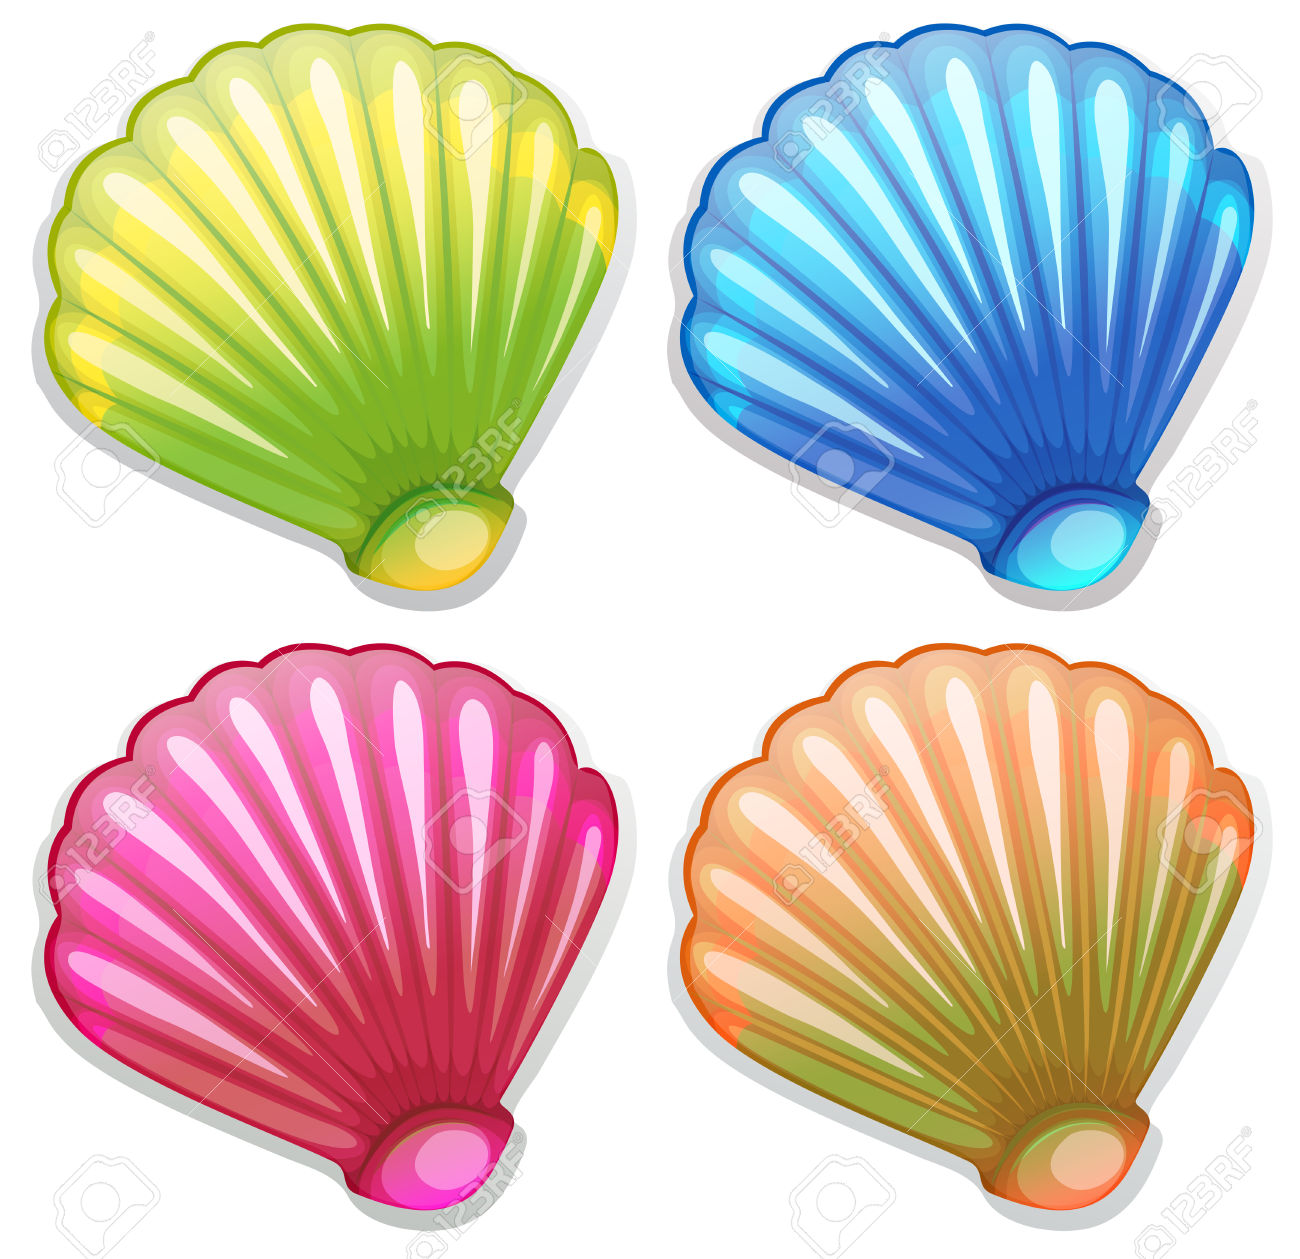 Colorful seashell clipart